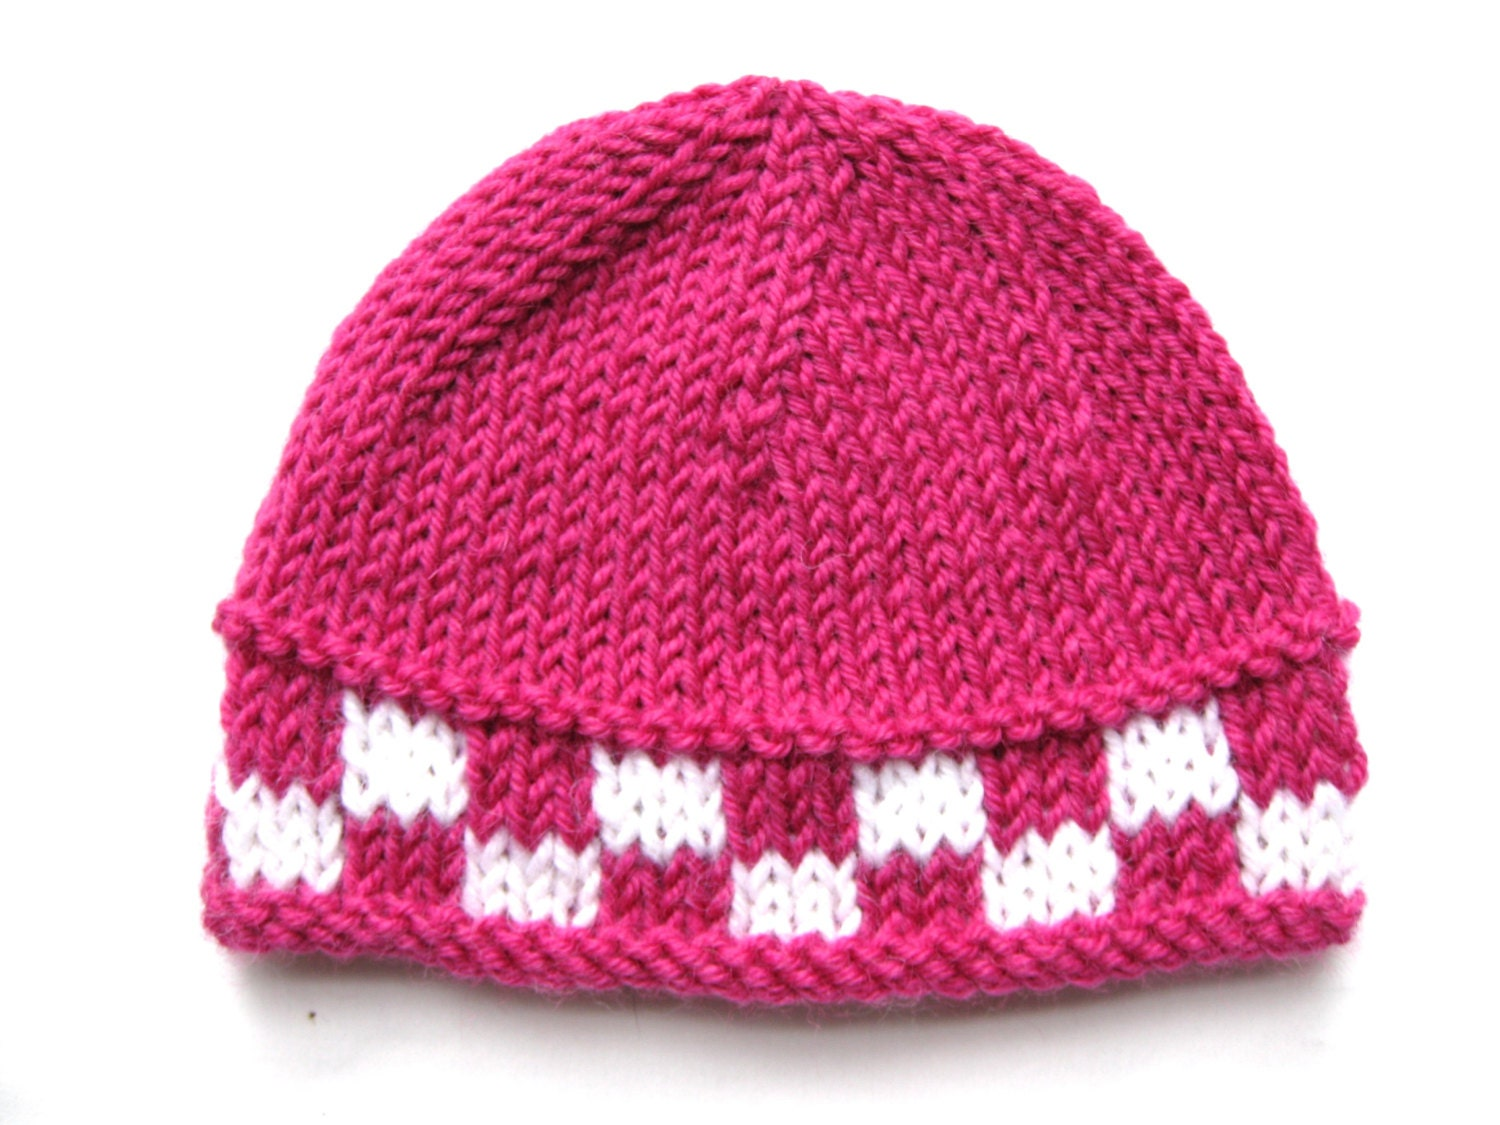 Knitting Pattern Baby Hat Premature : Pattern knit preemie newborn hat pdf beanie prem girl boy baby